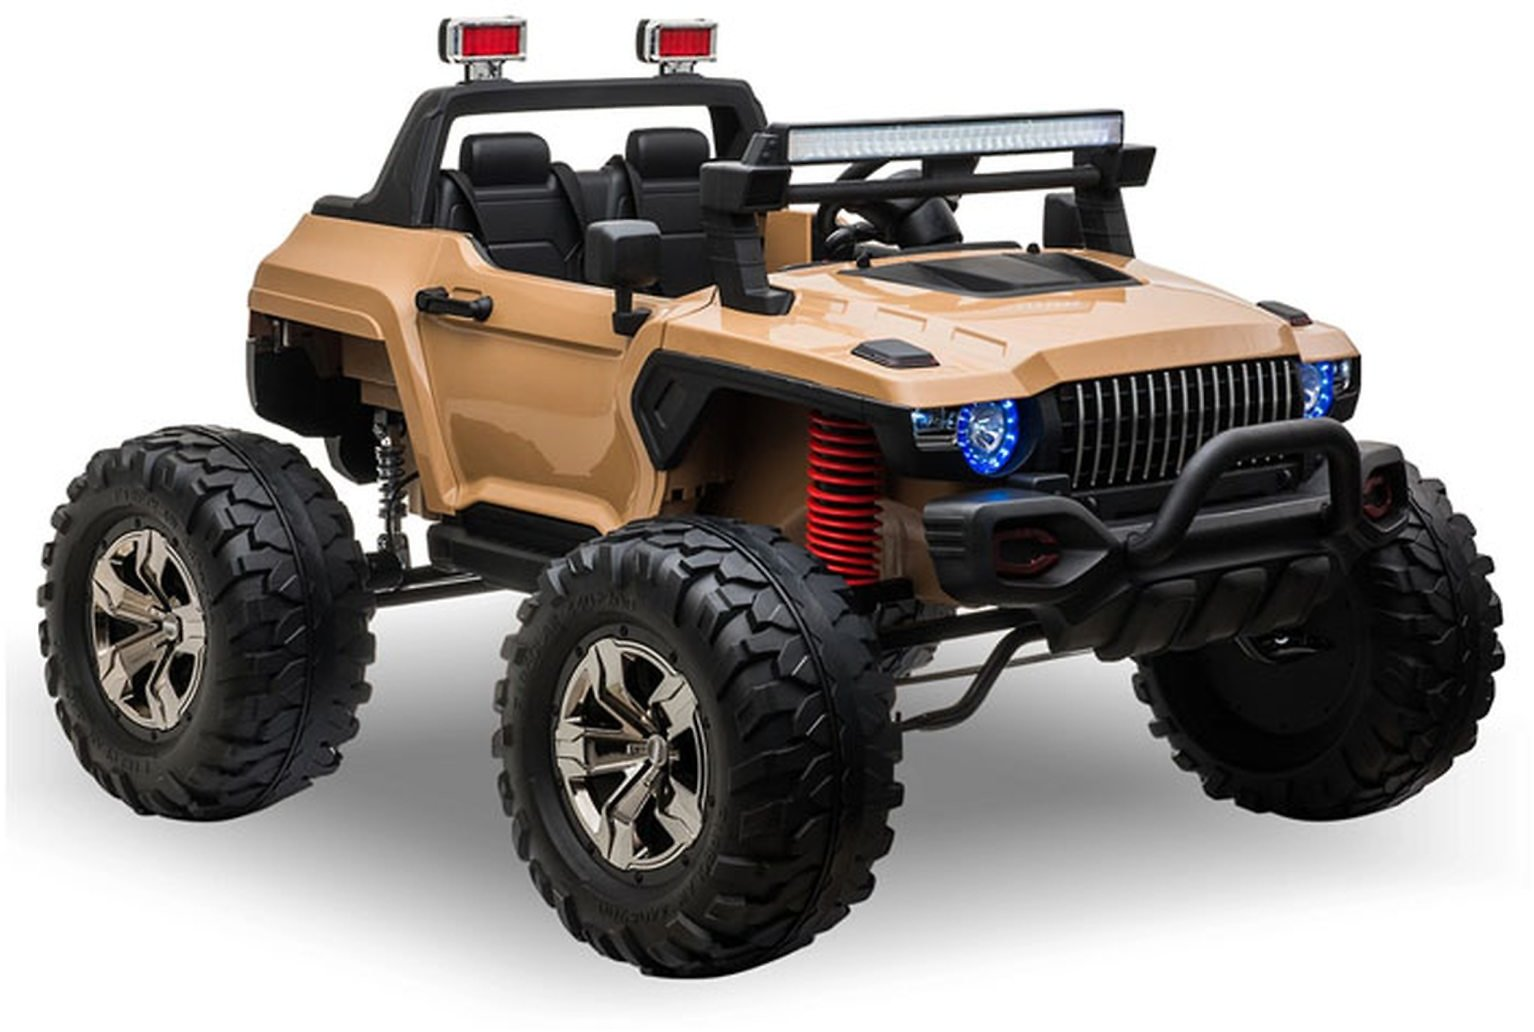 12V Electric Kids Off-Road SUV with Remote Control